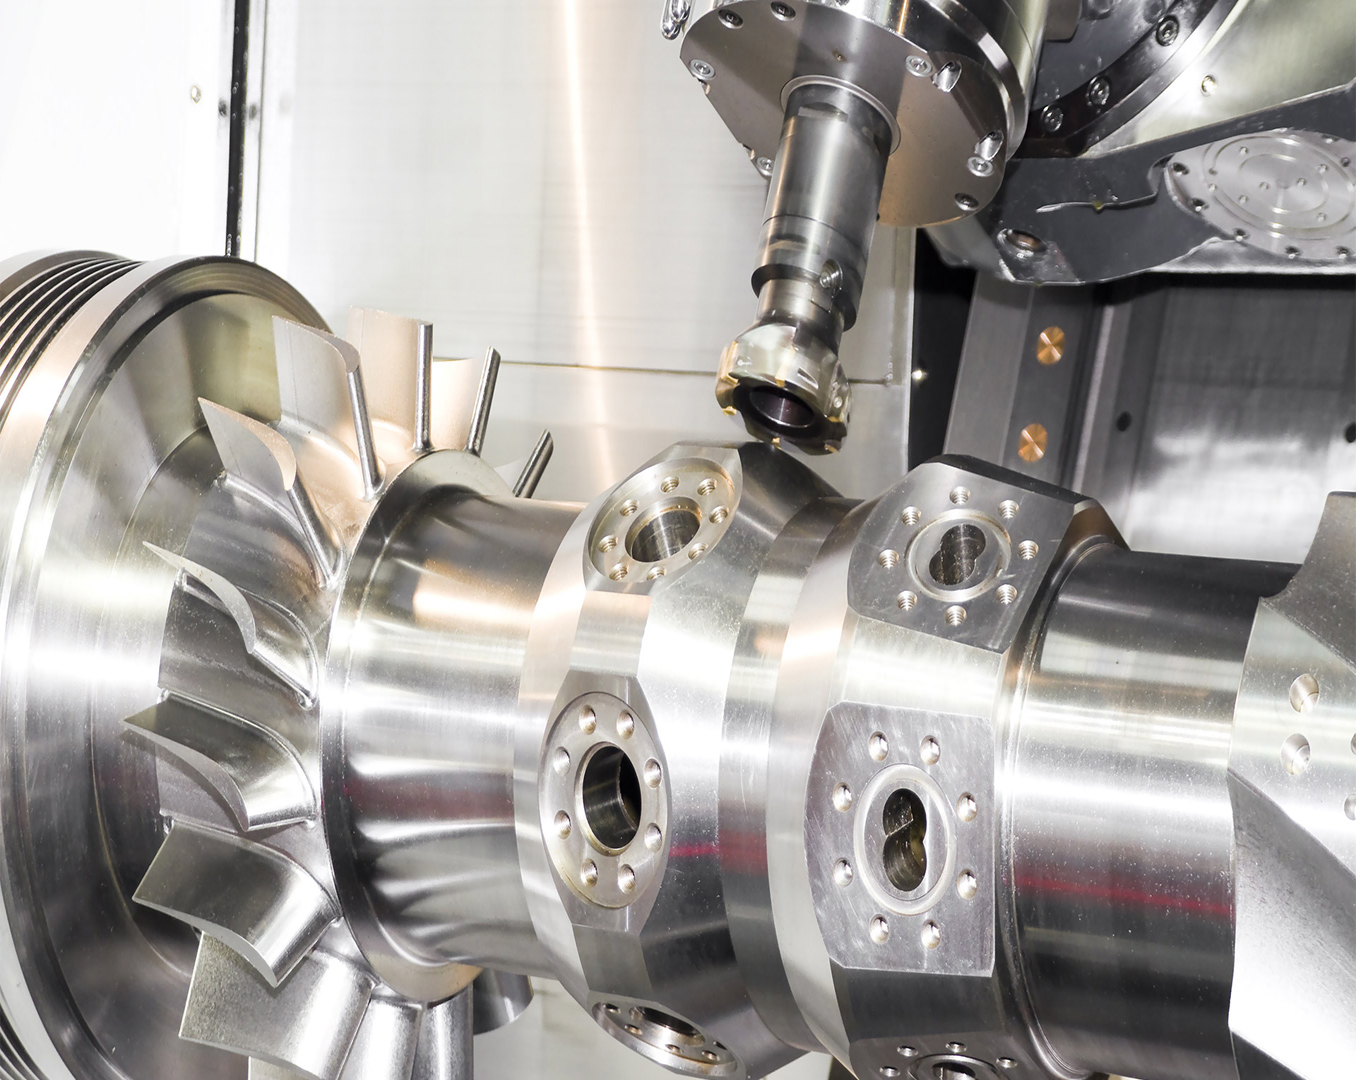 What General Questions To Ask About Industrial Machine Tools?